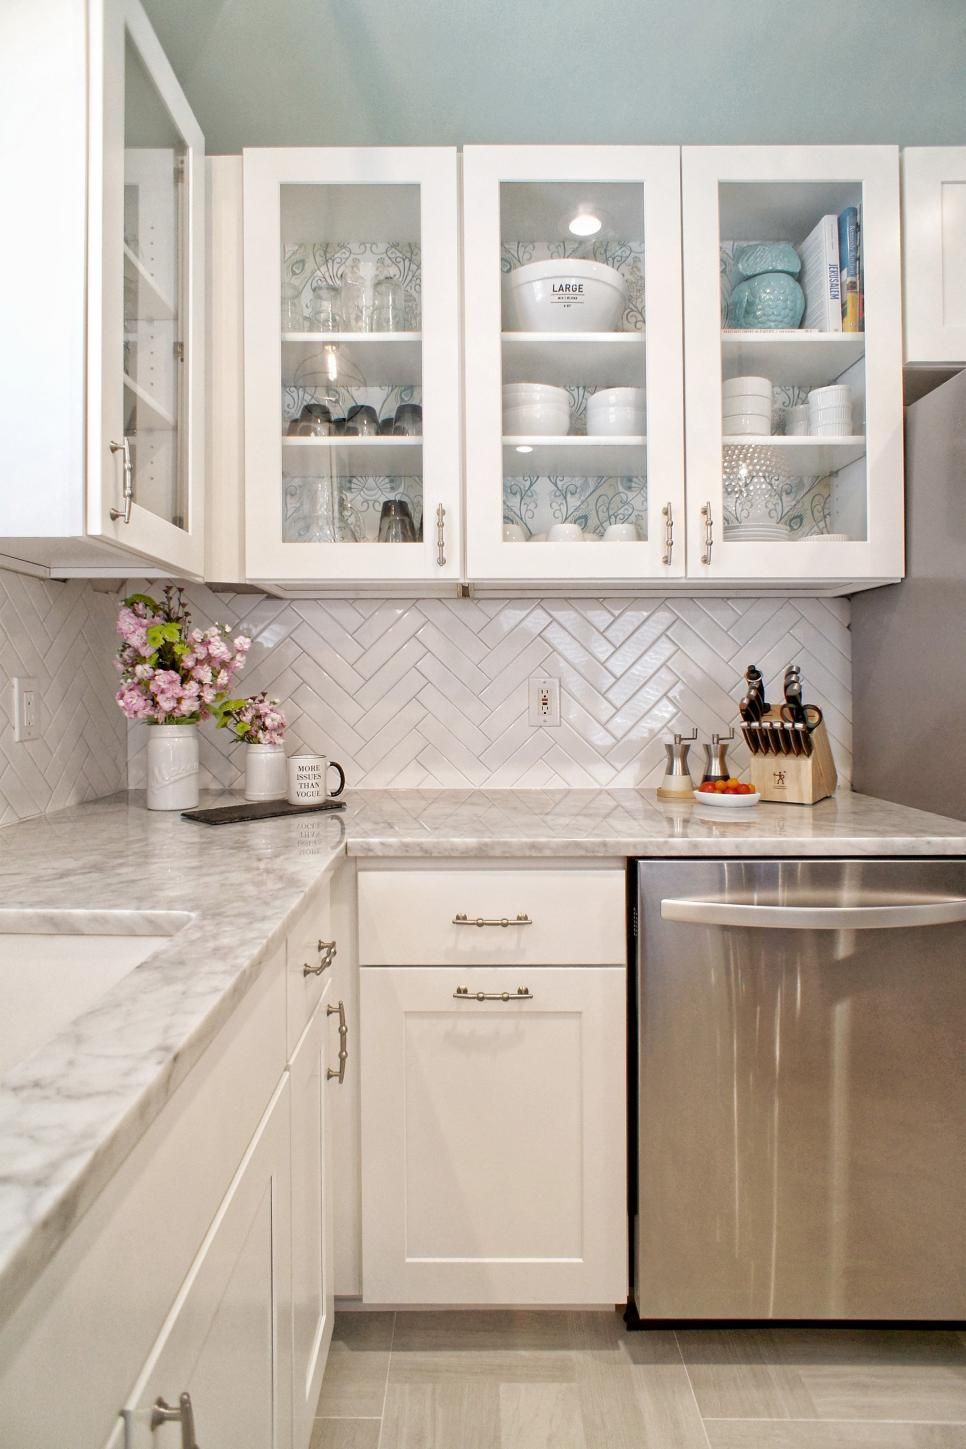 Modern Kitchen Backsplash 2016 our 25 most-pinned photos of 2016 | herringbone backsplash, shaker